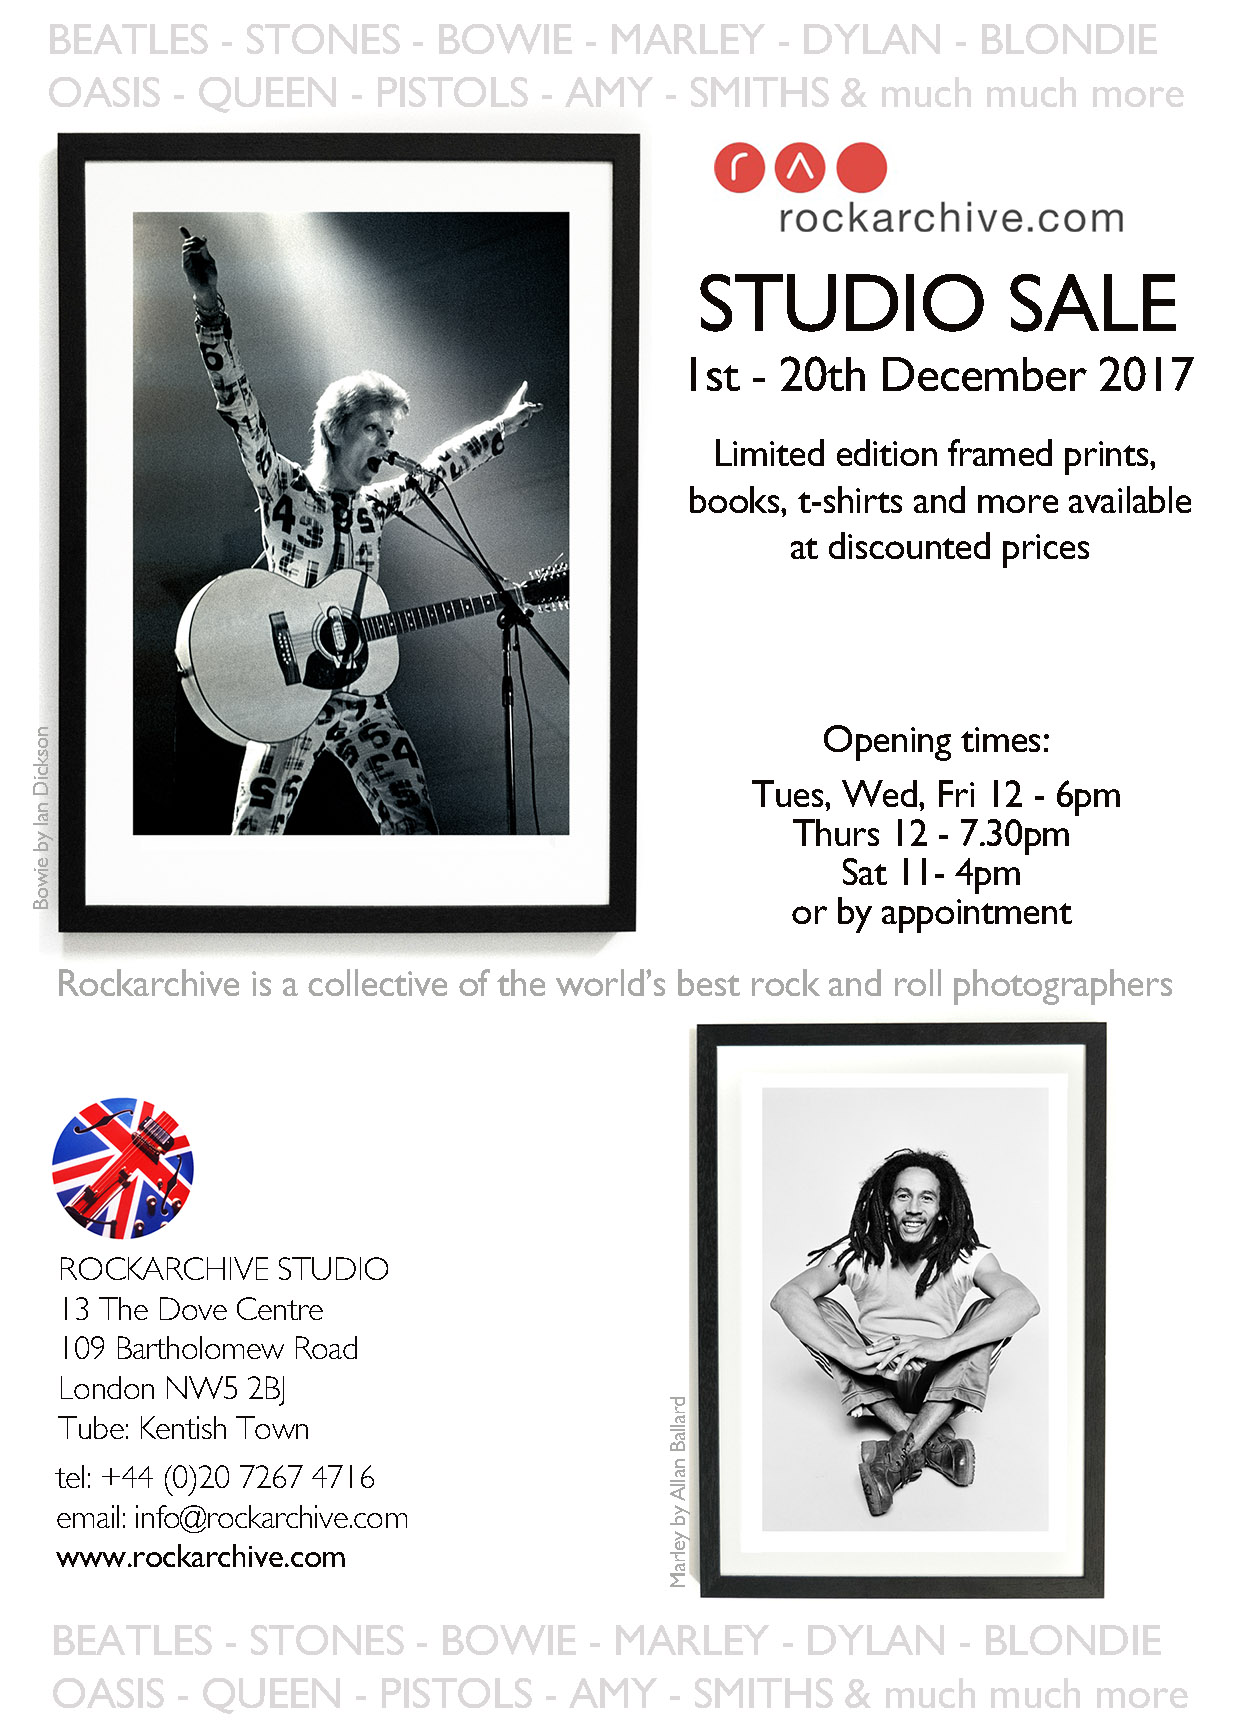 ROCKARCHIVE-STUDIO-SALE.jpg